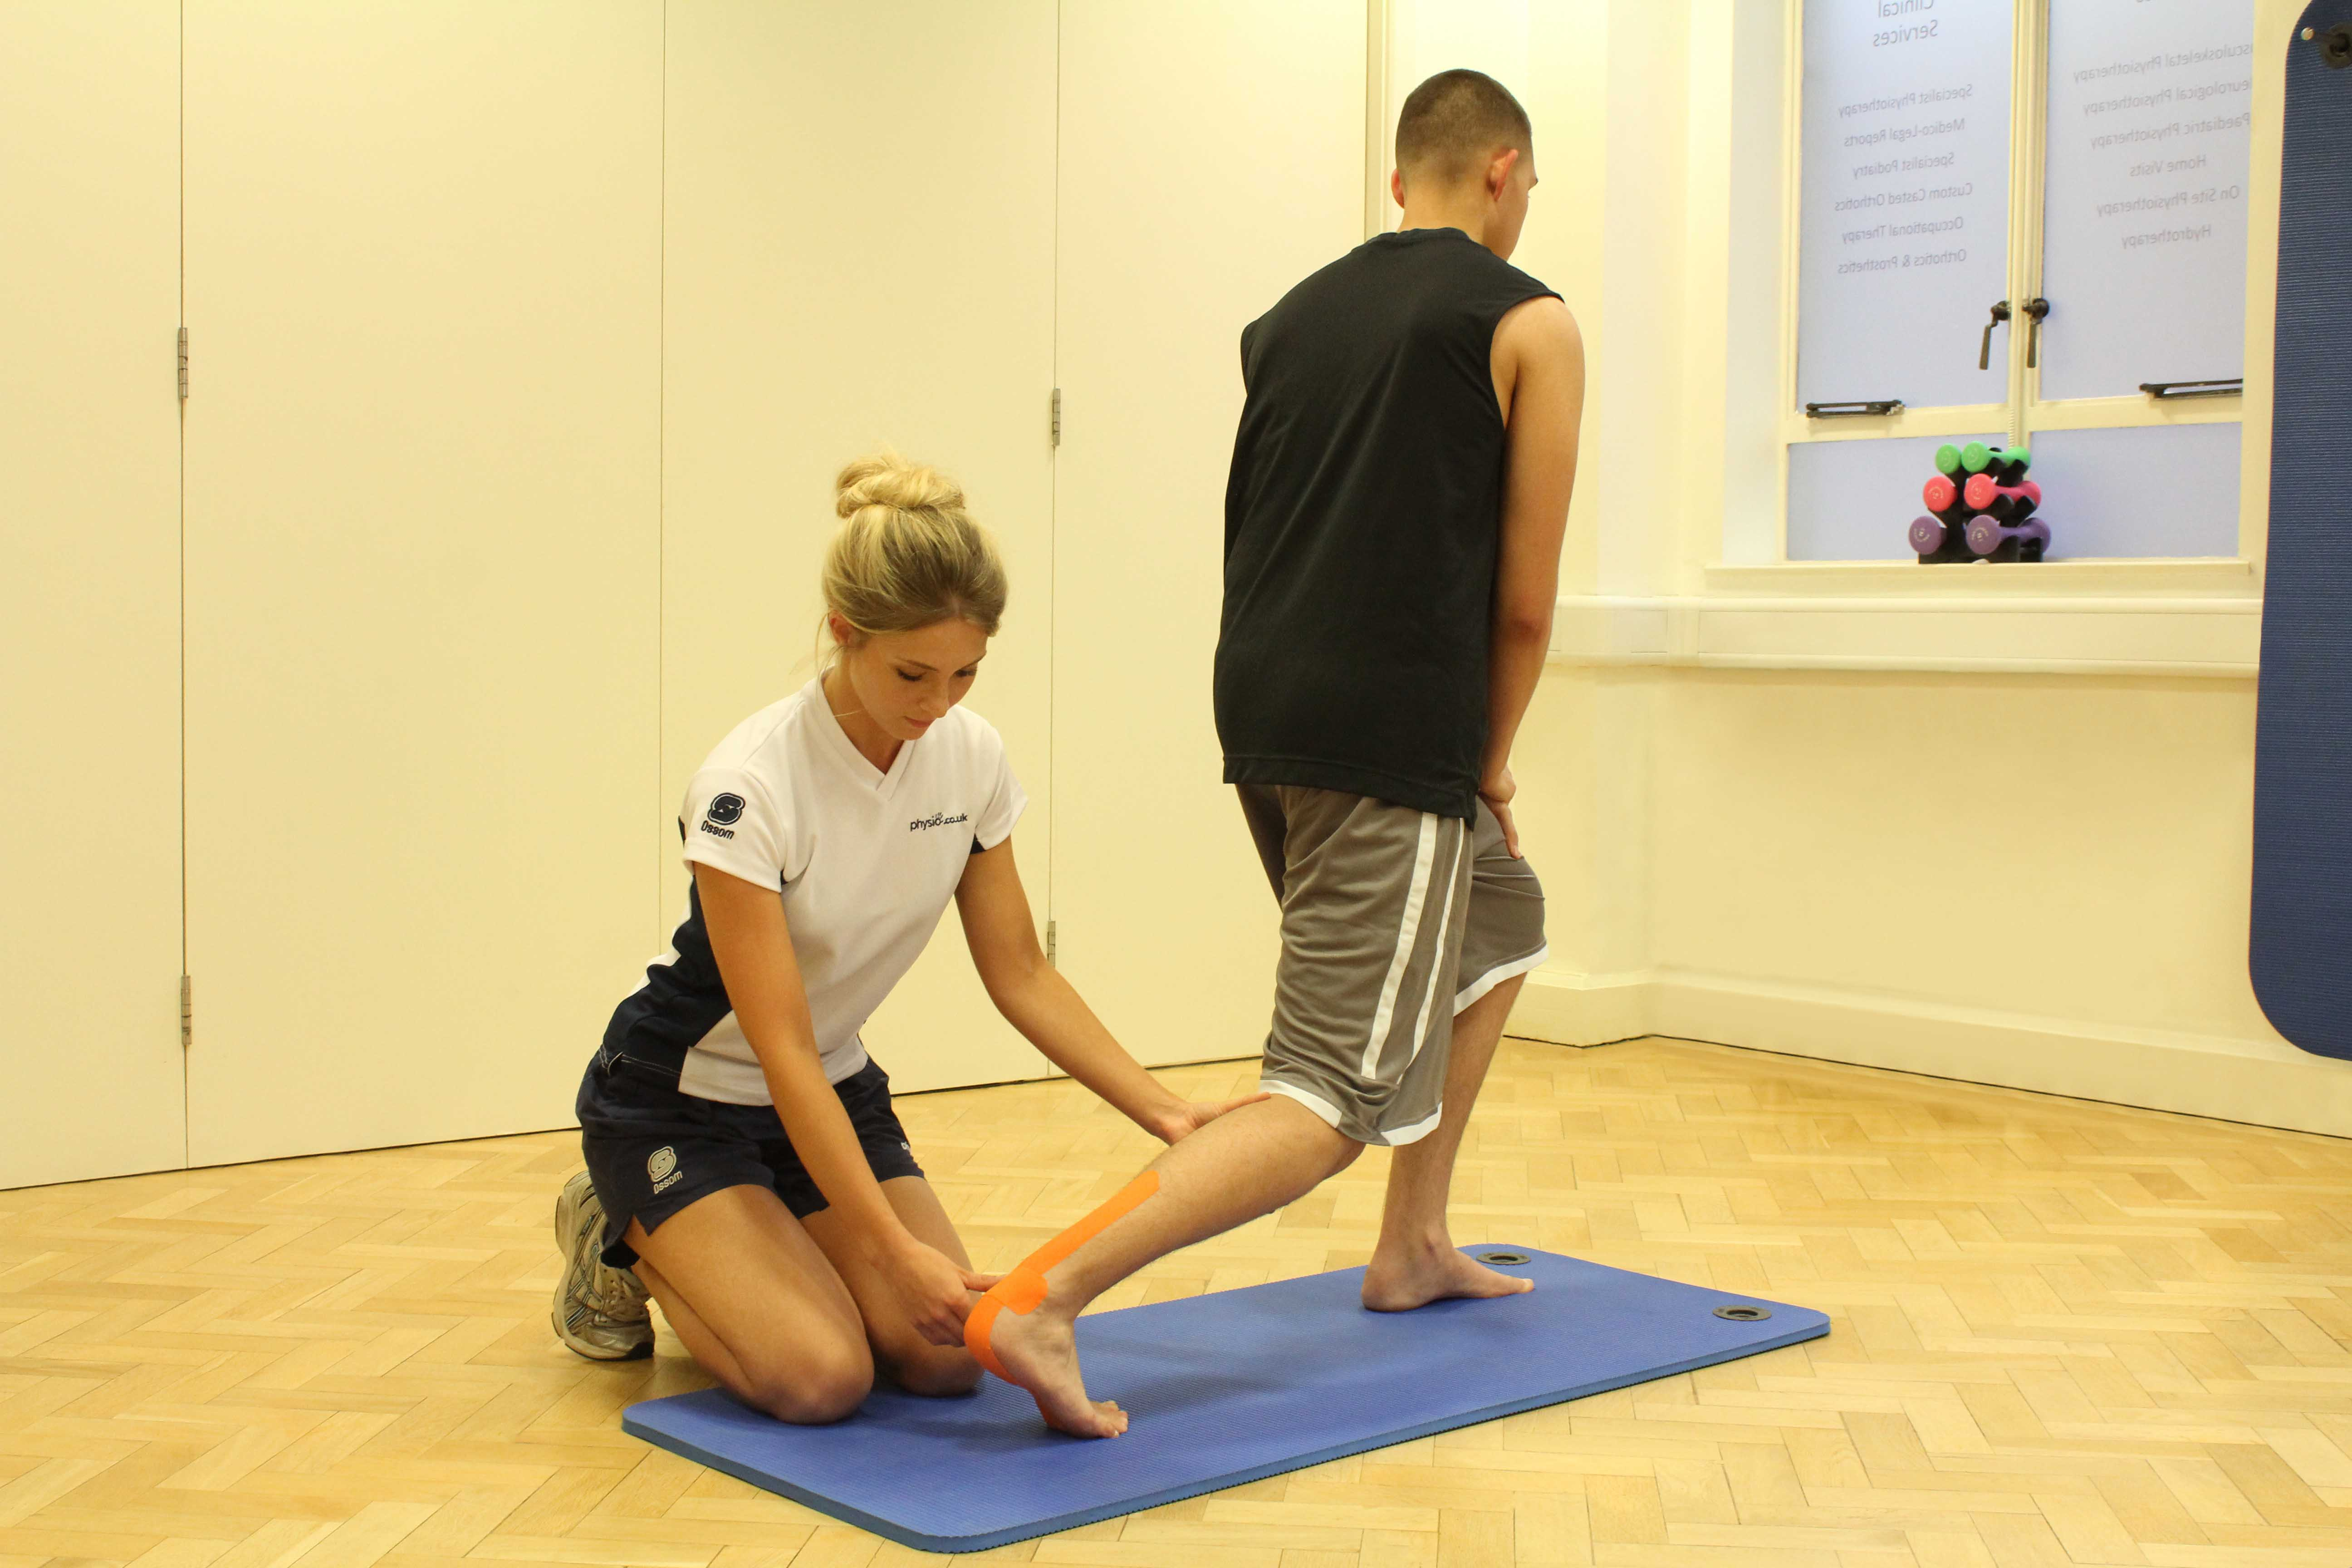 Taping the ankle to improve stability during rehabilitation exercises